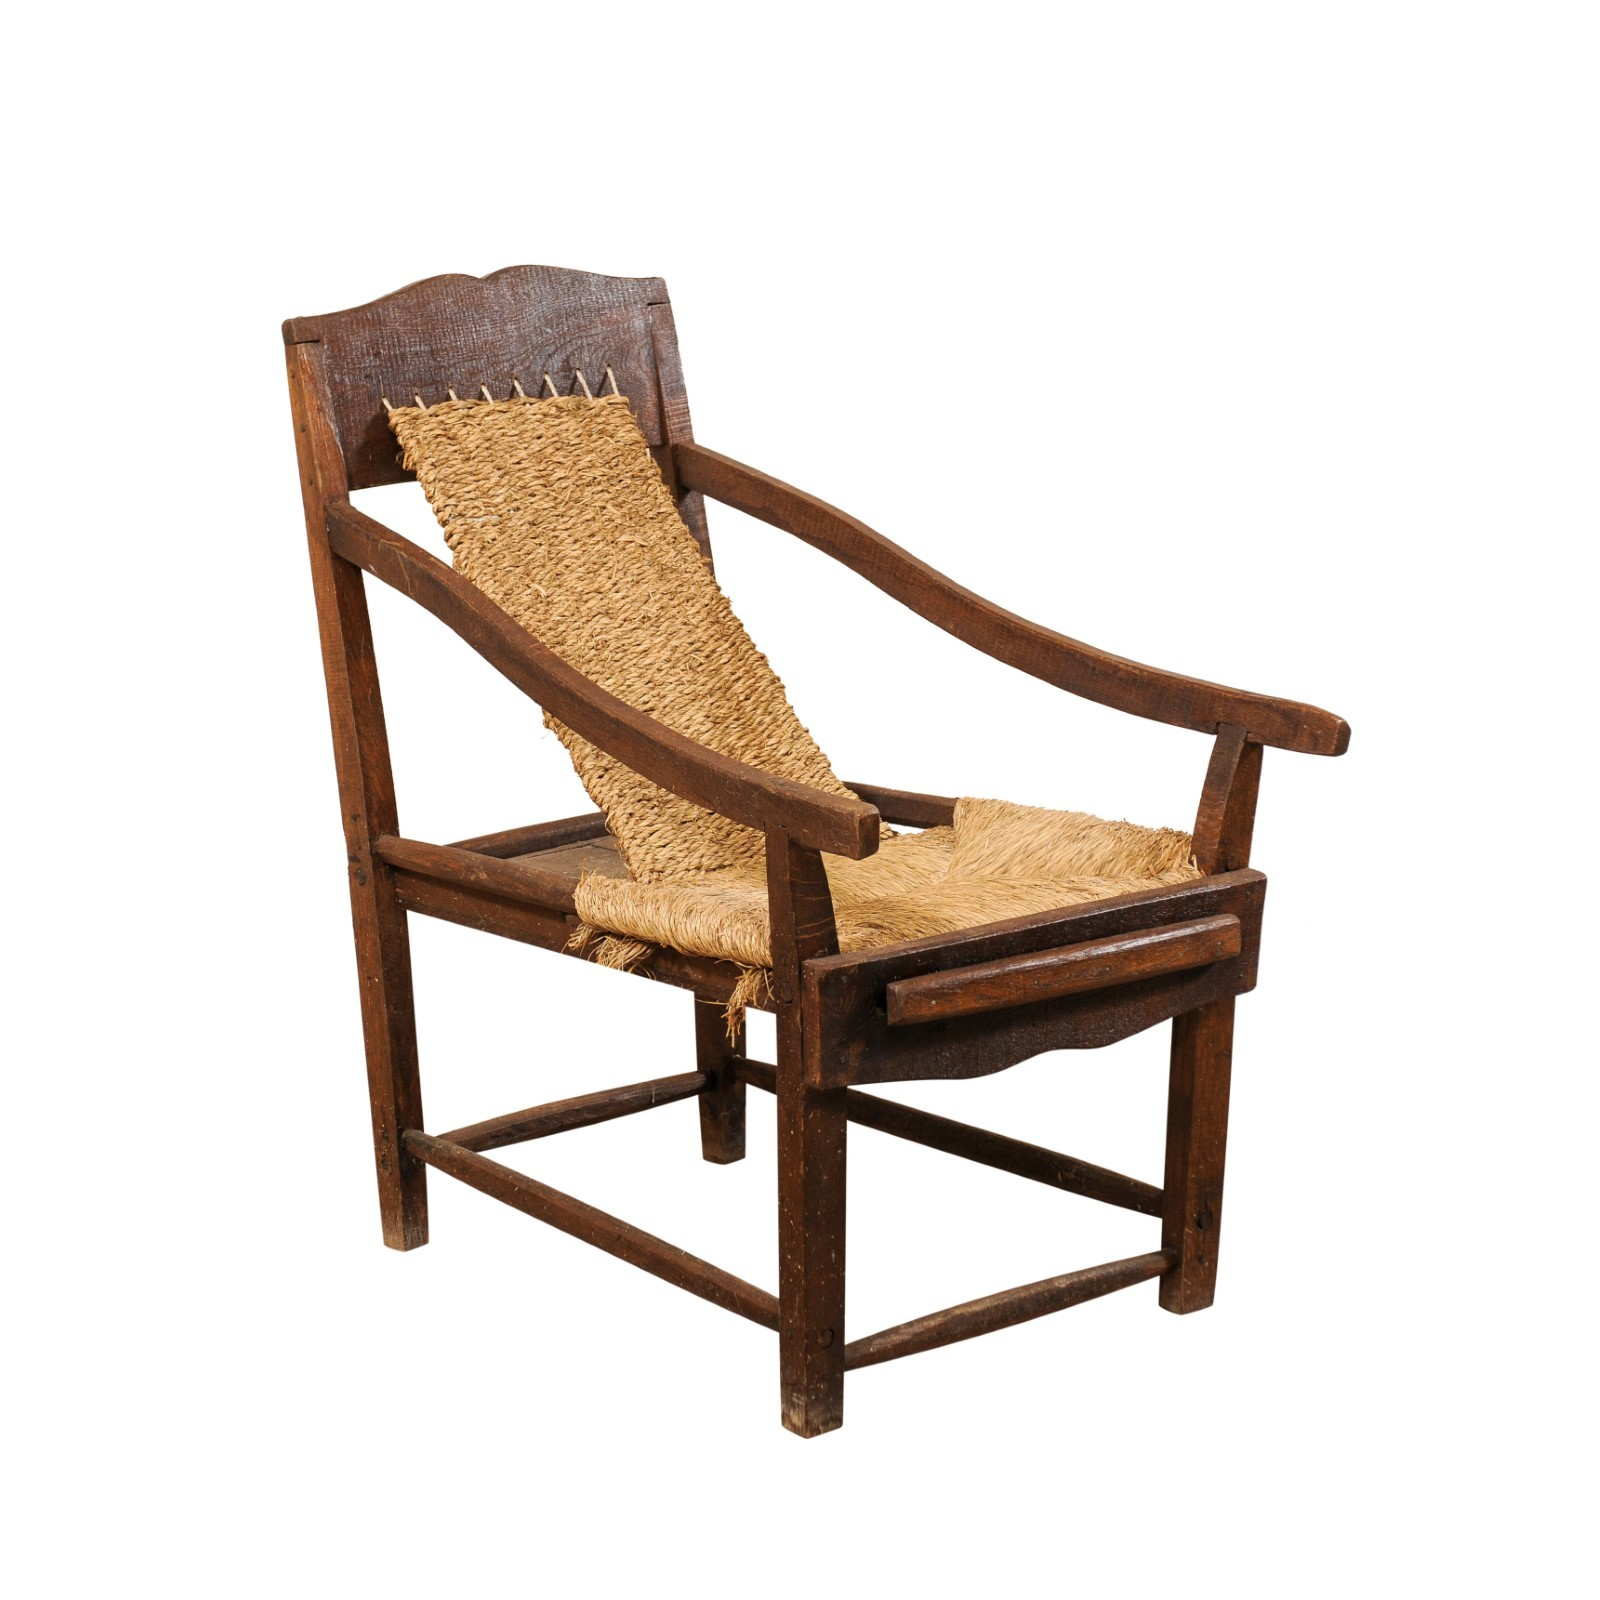 Italian Sling Lounge Chair, Early 20th C.